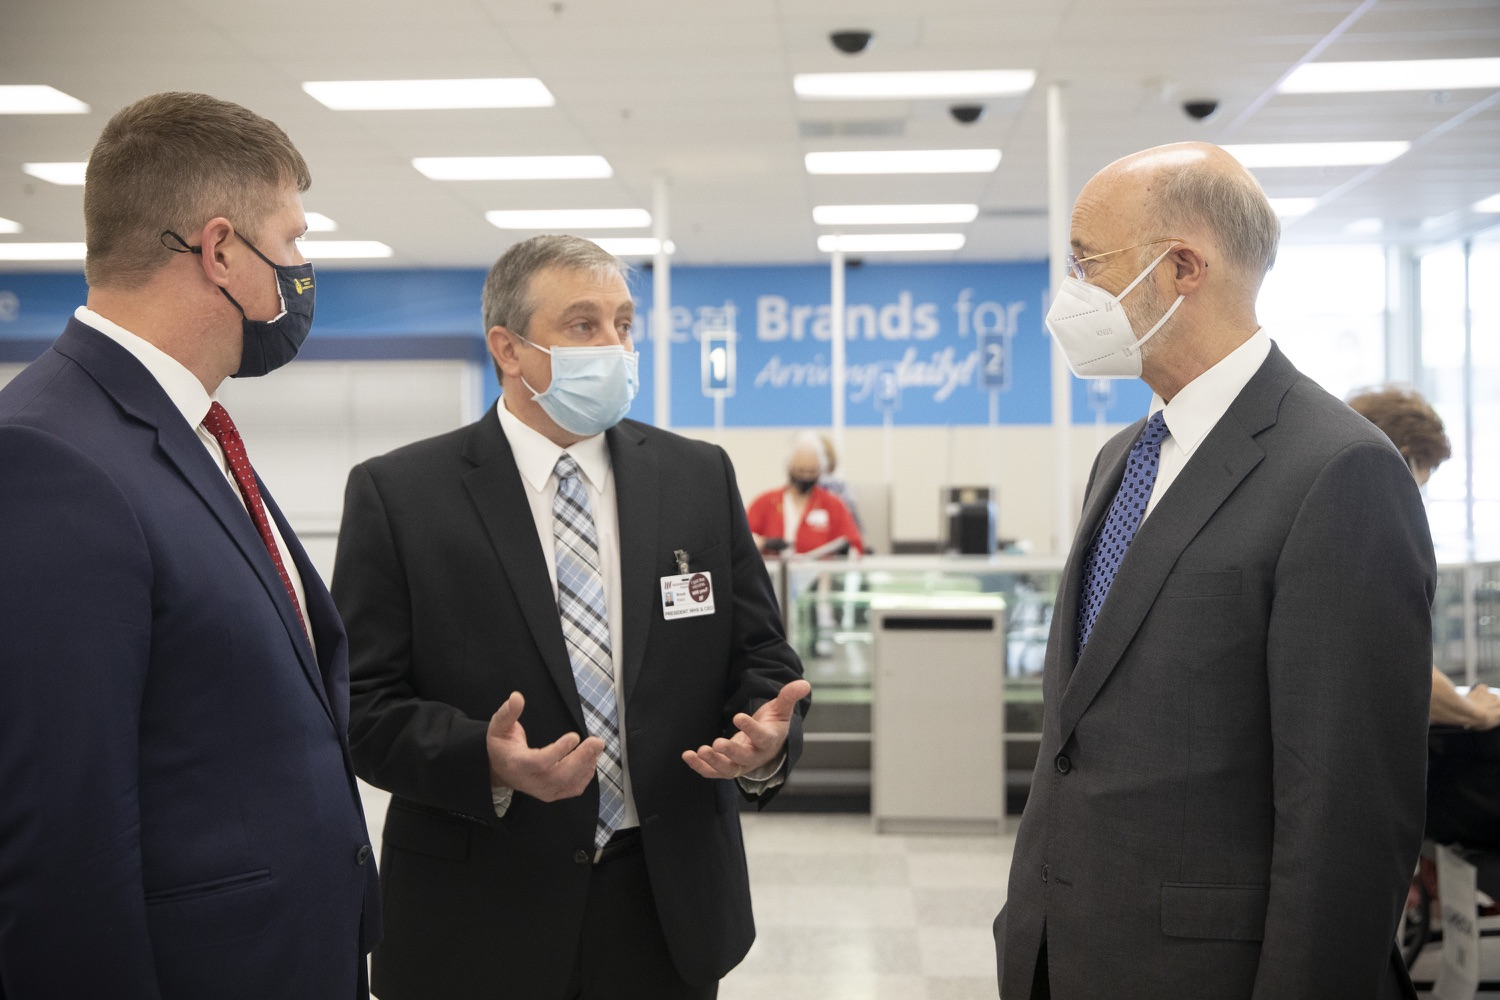 "<a href=""https://filesource.wostreaming.net/commonwealthofpa/photo/18712_gov_vaccines_dz_015.jpg"" target=""_blank"">⇣ Download Photo<br></a>Pennsylvania Governor Tom Wolf touring the vaccine facility with  Brook Ward, Washington Health System CEO & President and Pennsylvania State Representative Tim O'Neal.Continuing to visit COVID-19 vaccine clinics around the state, Governor Tom Wolf toured a clinic at the Washington Crown Center in Washington County today. The clinic is one of three operated by the Washington Health System (WHS) serving rural communities in southwestern Pennsylvania.  North Franklin Township, PA  April 28, 2021"